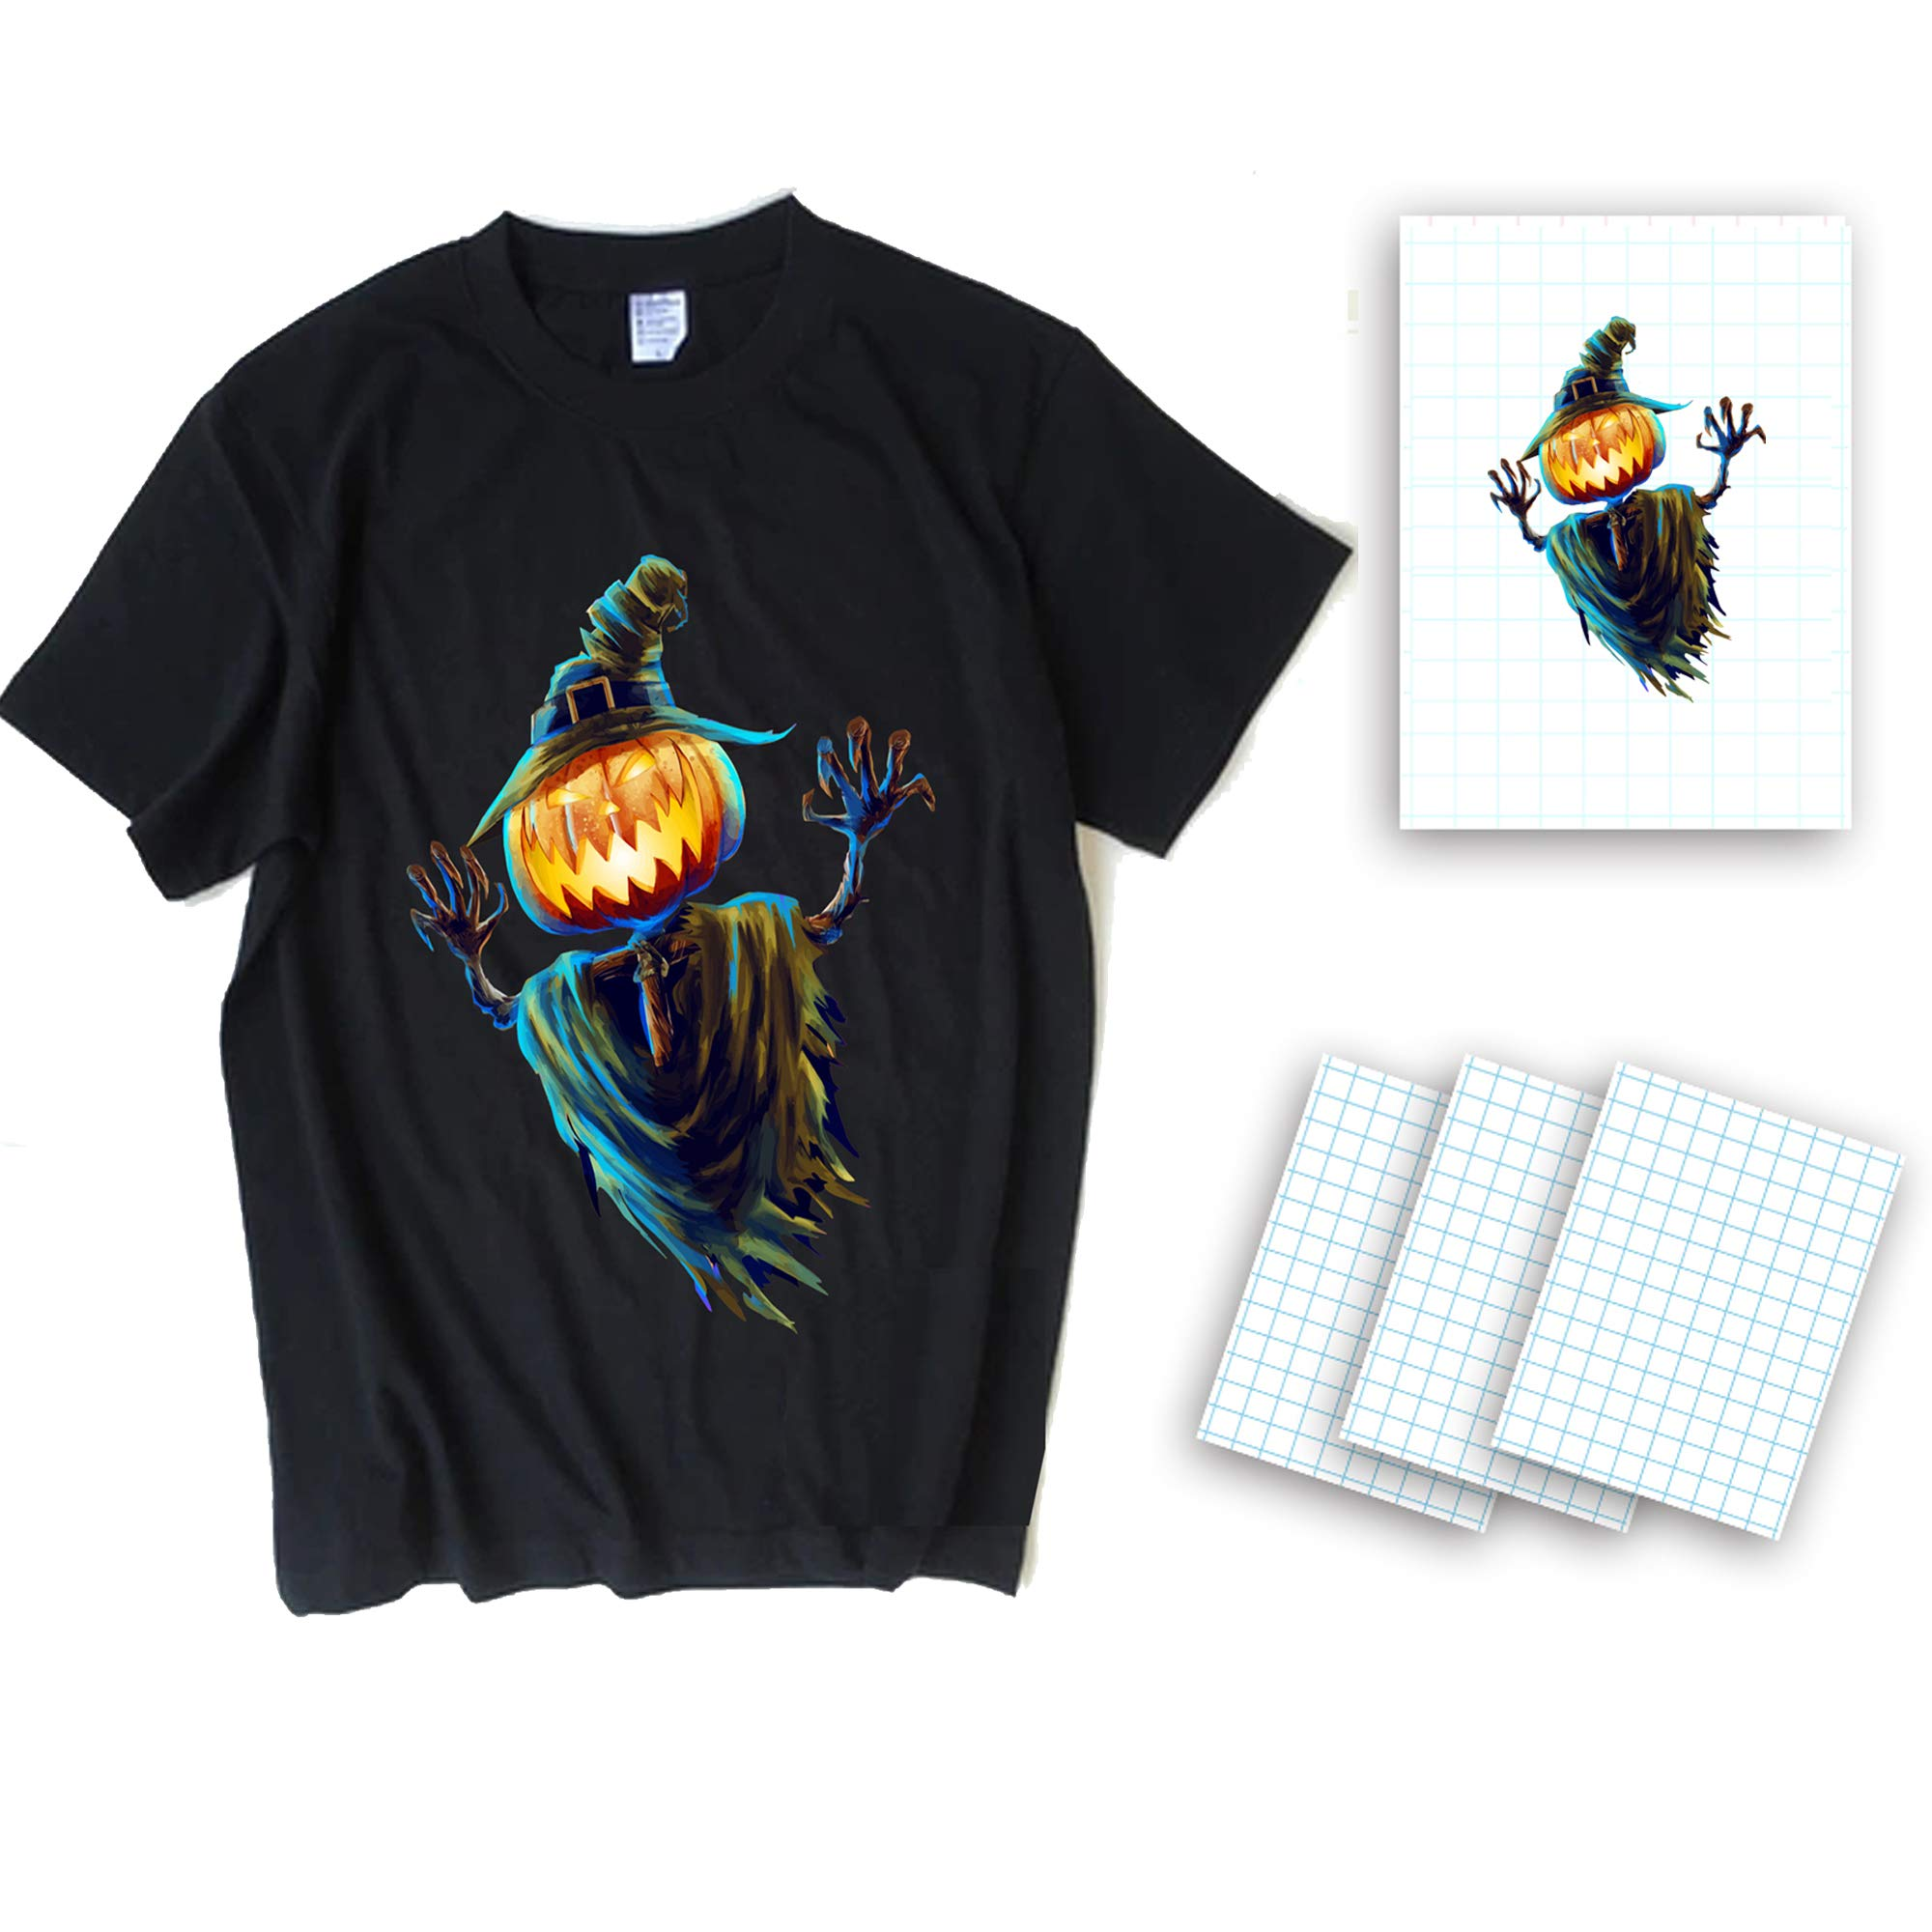 Dark T-Shirt Transfers A4 T-Shirt Transfers Heat Transfer Sheets Paper for Inkjet Printers, For Dark Fabric 8.27'' X 11.7'' (12 Sheets) Print Iron on -Make Your Own Halloween Shirt